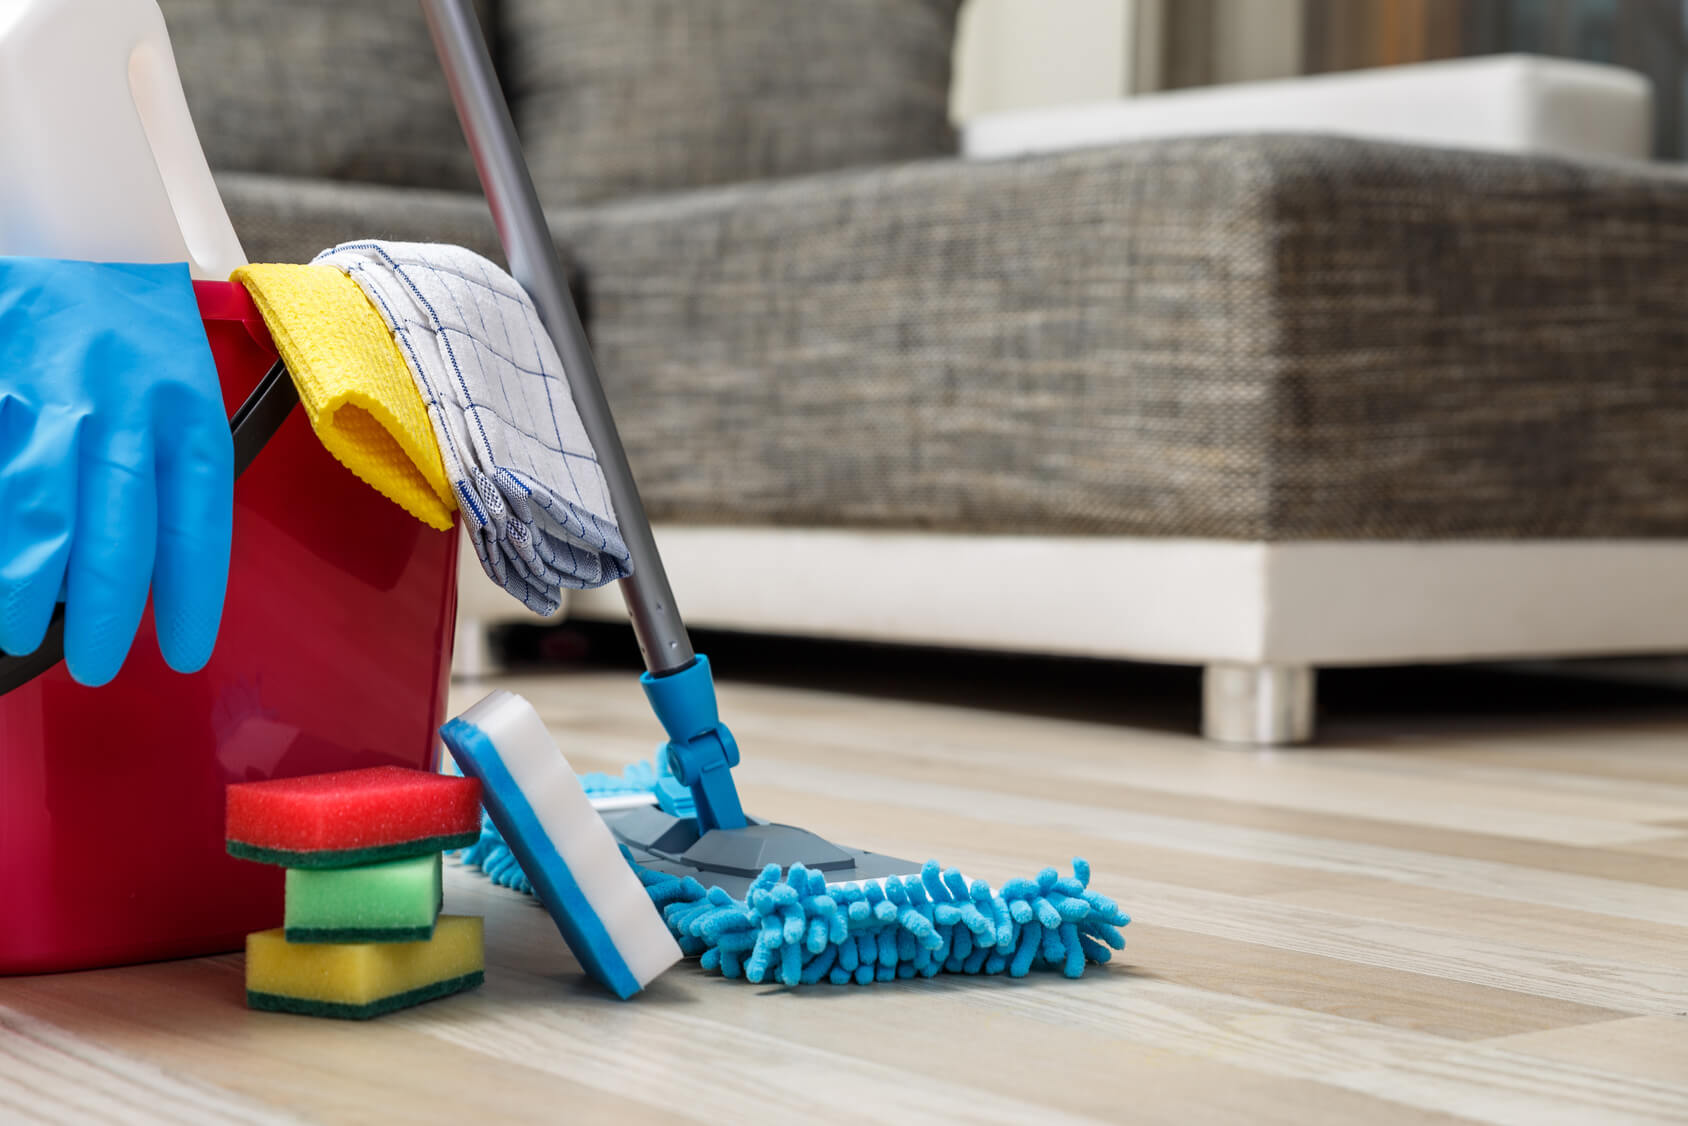 Need a Commercial Cleaning Service? We Serve these Industries